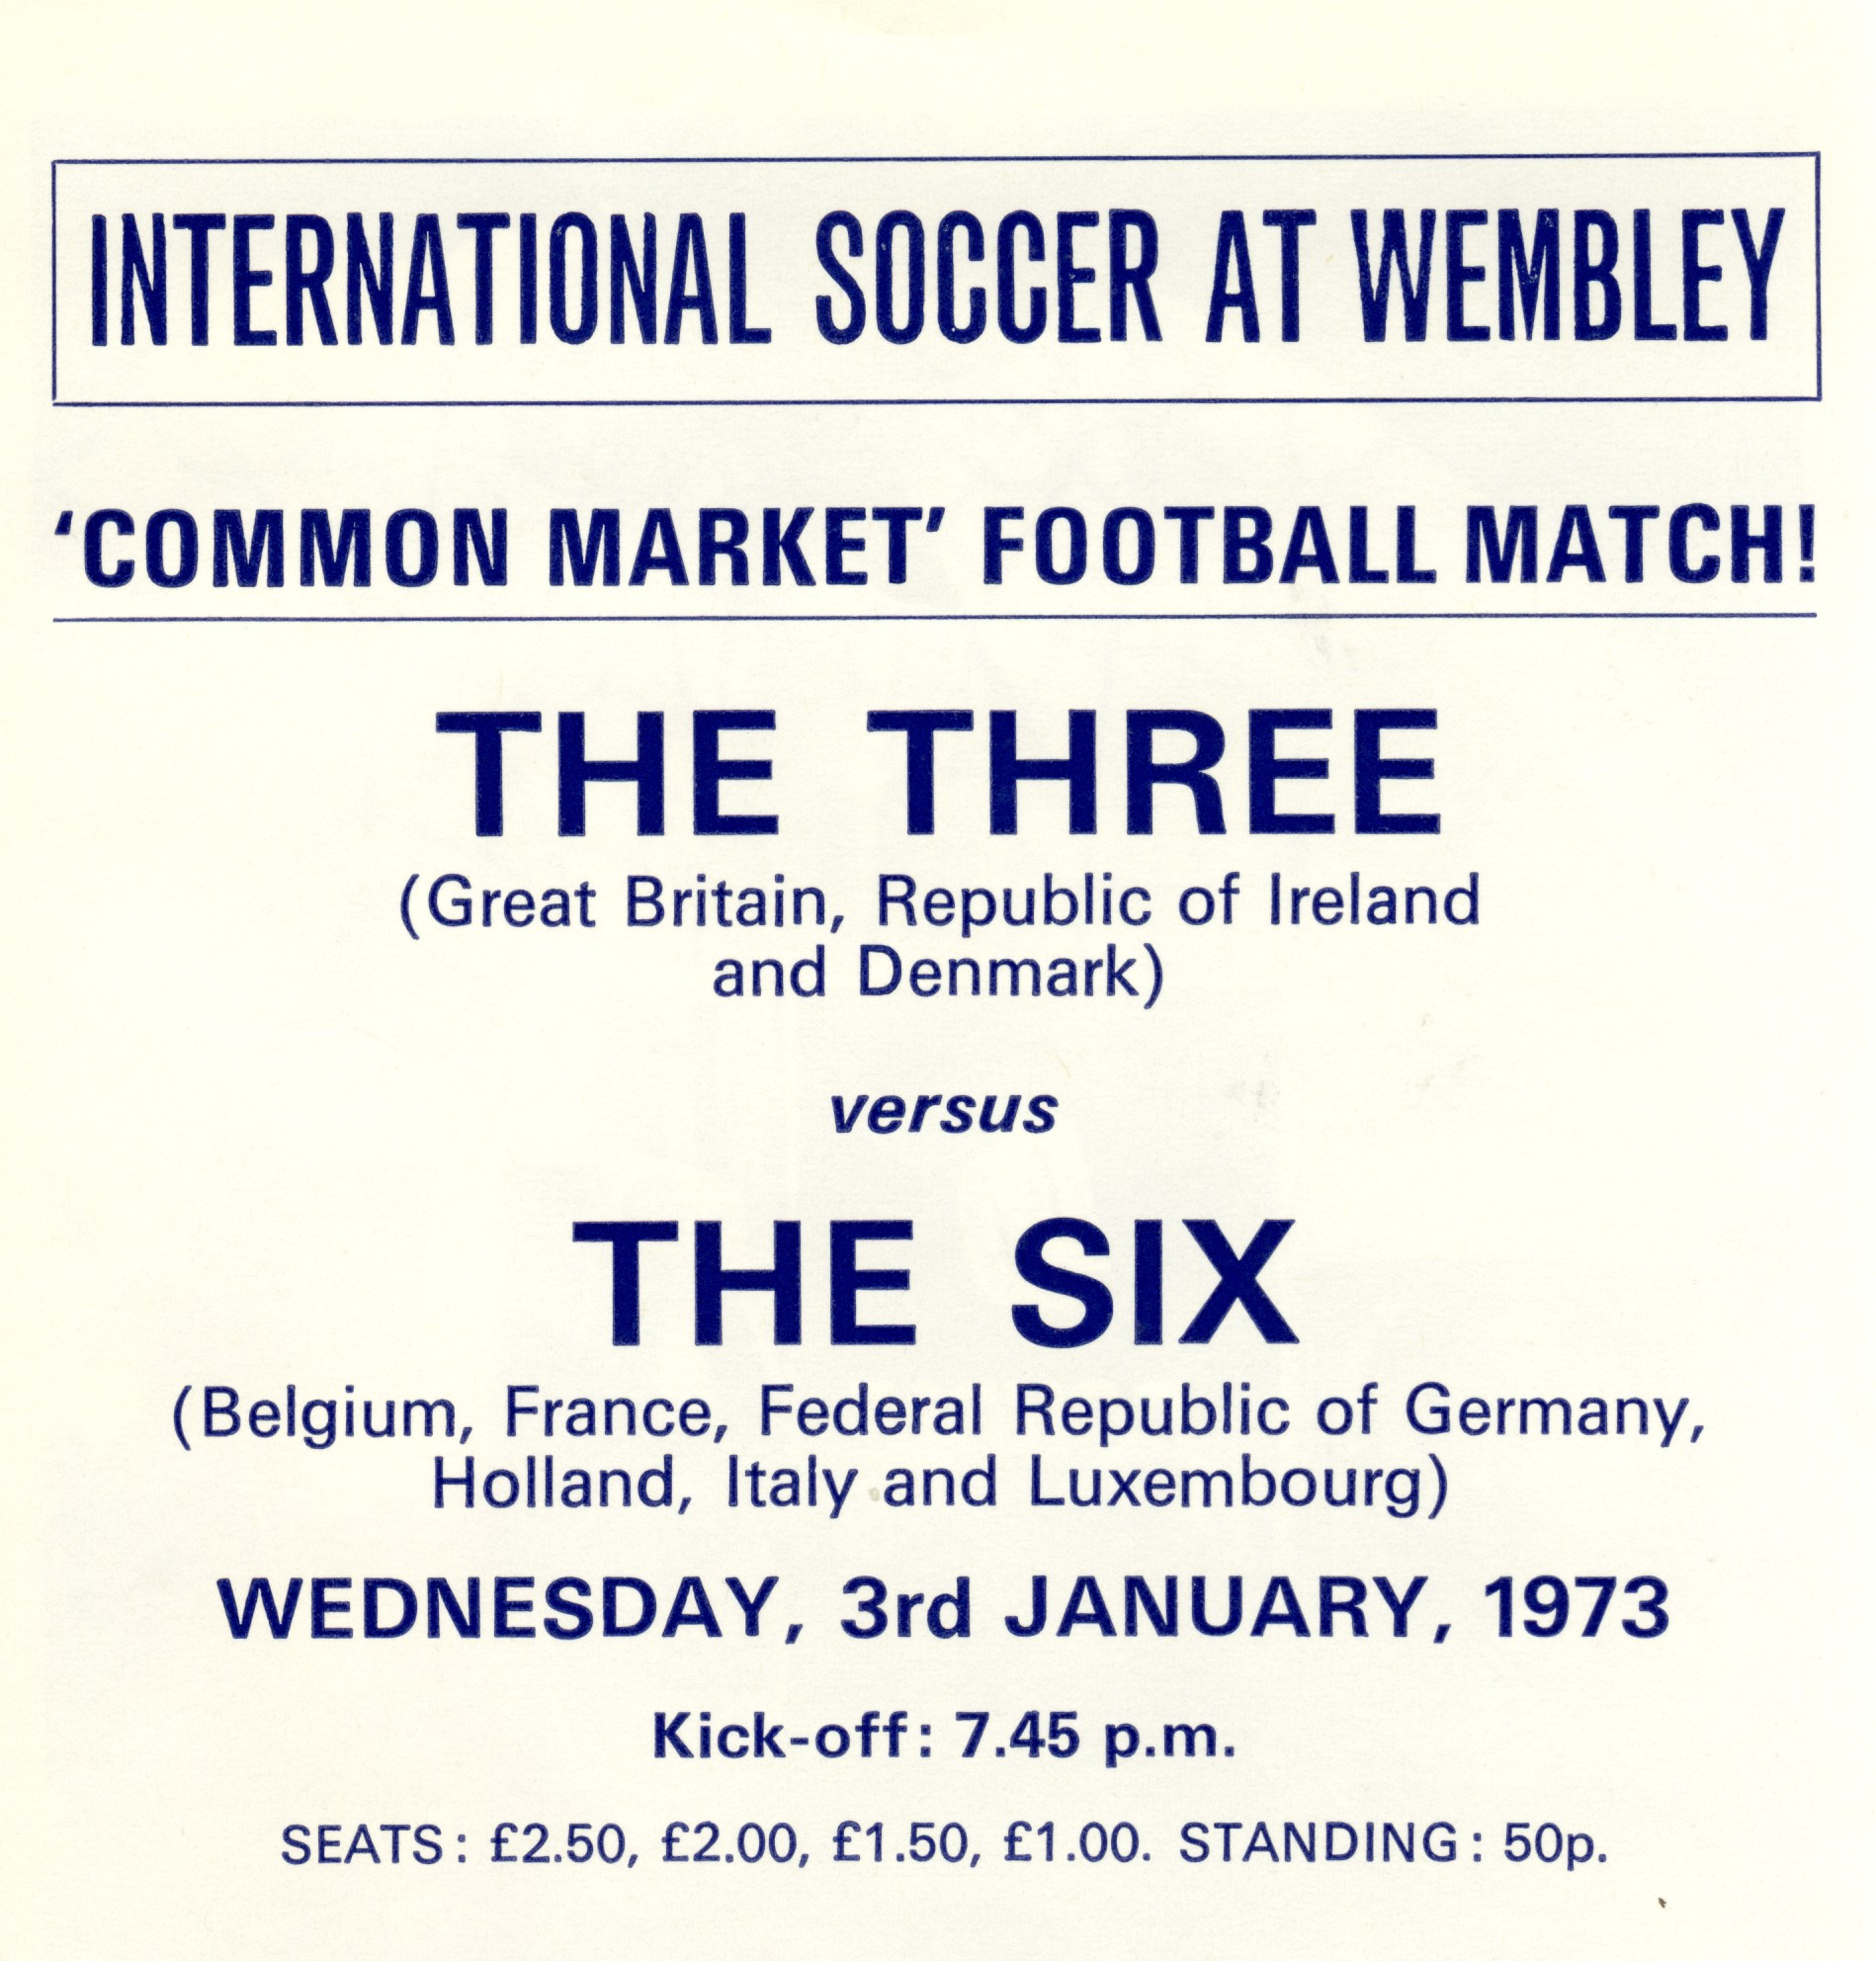 Interest in the match at Wembley Stadium was low, despite the cheap tickets available ©Philip Barker